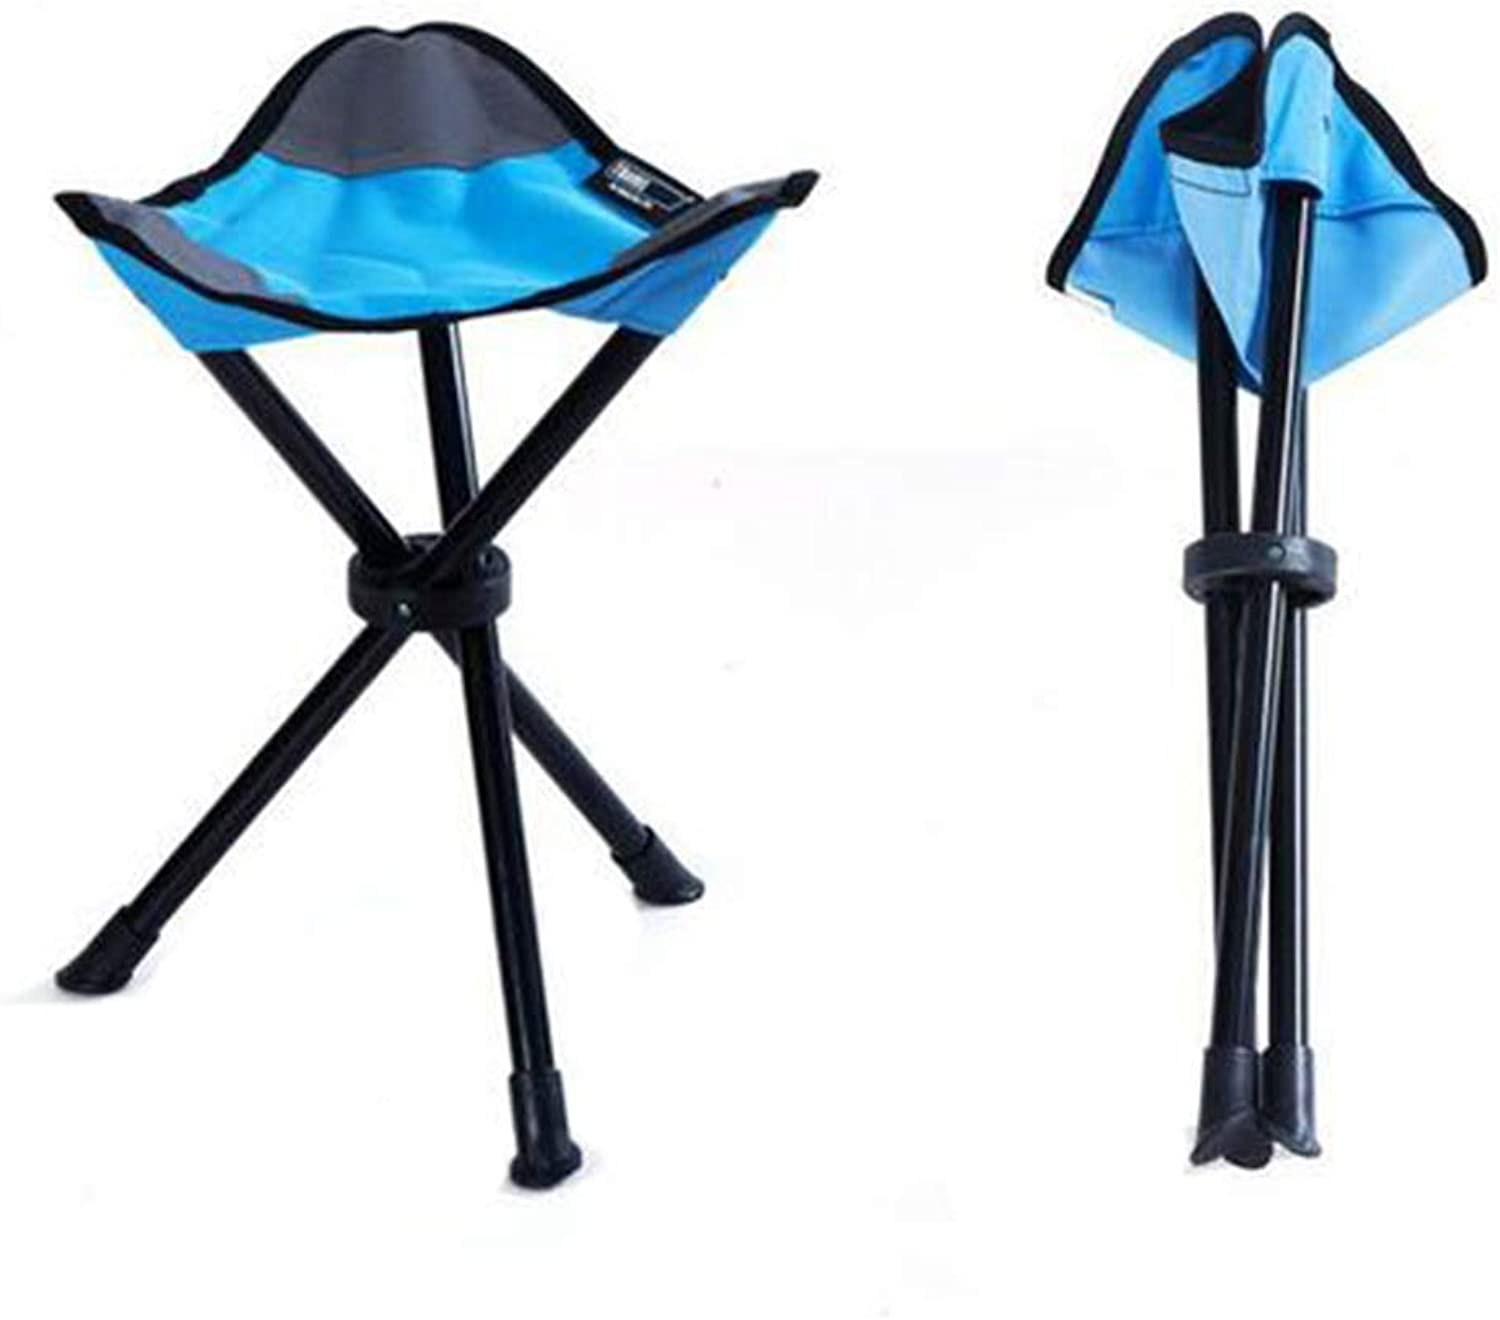 Portable Folding Chair Stool Triangle Camping Stool Furniture Beach Chair for Camping Traveling bluee